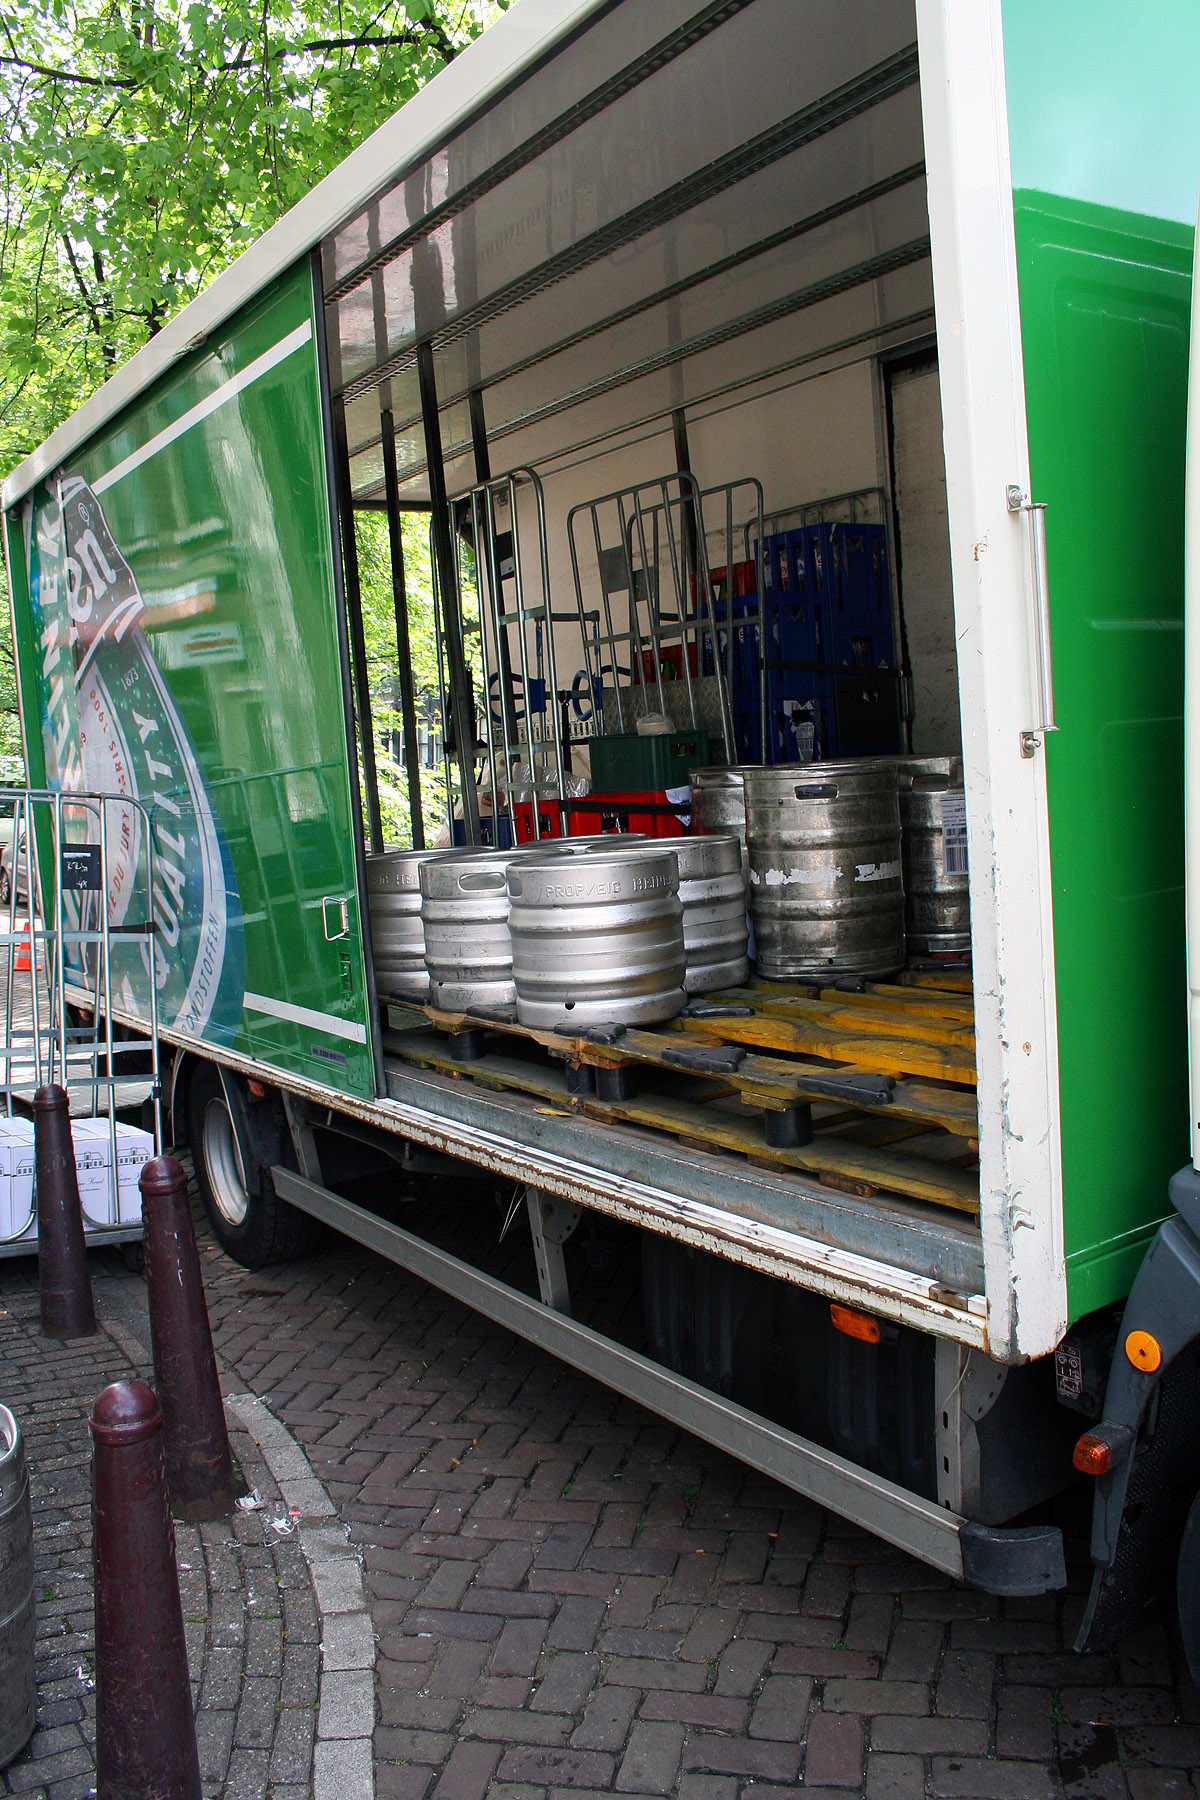 Beer in trailer, Beer, Containers, Deliver, Service, HQ Photo